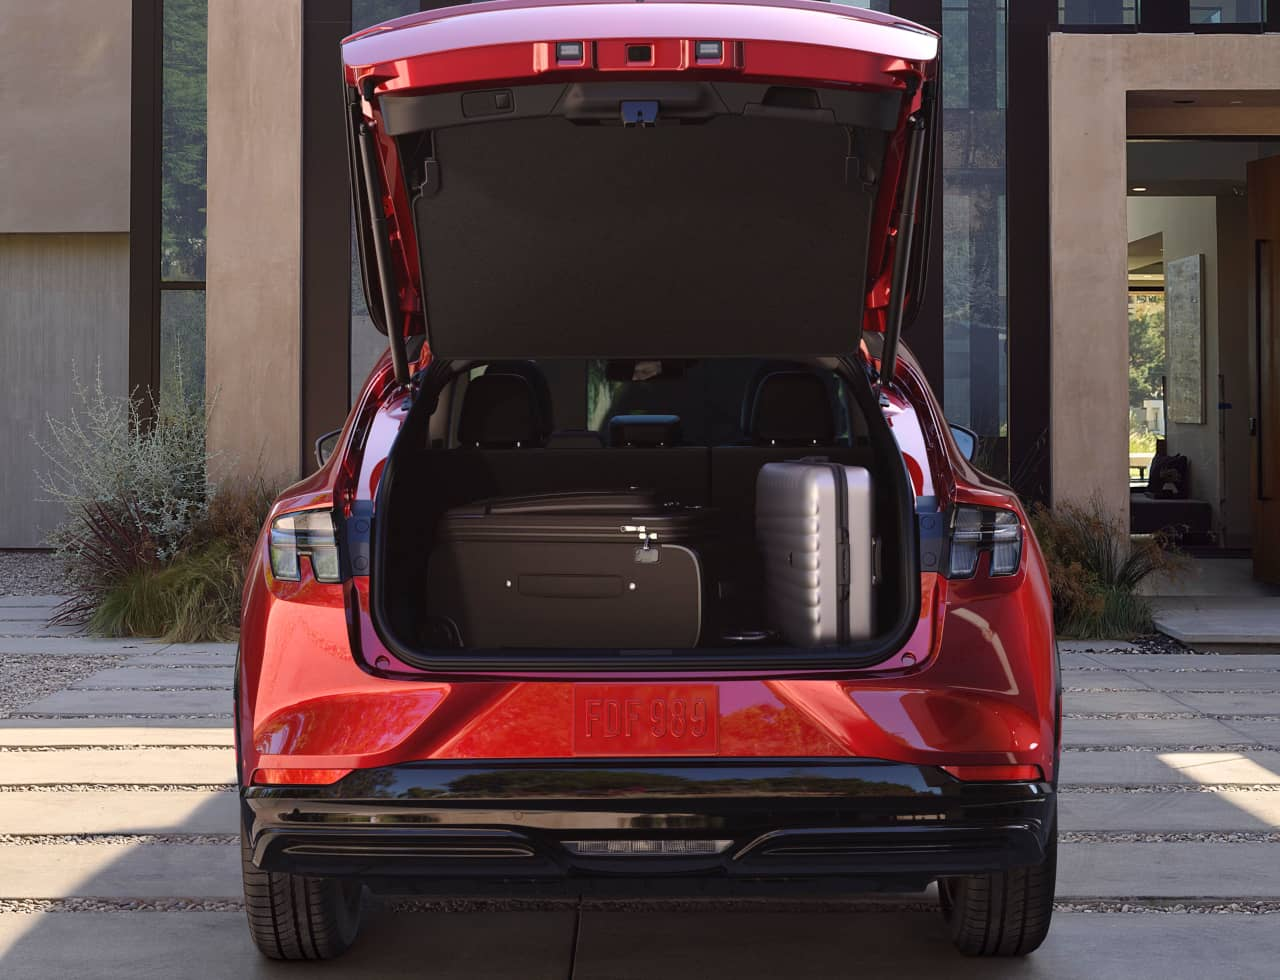 Ford Mustang Mach E luggage